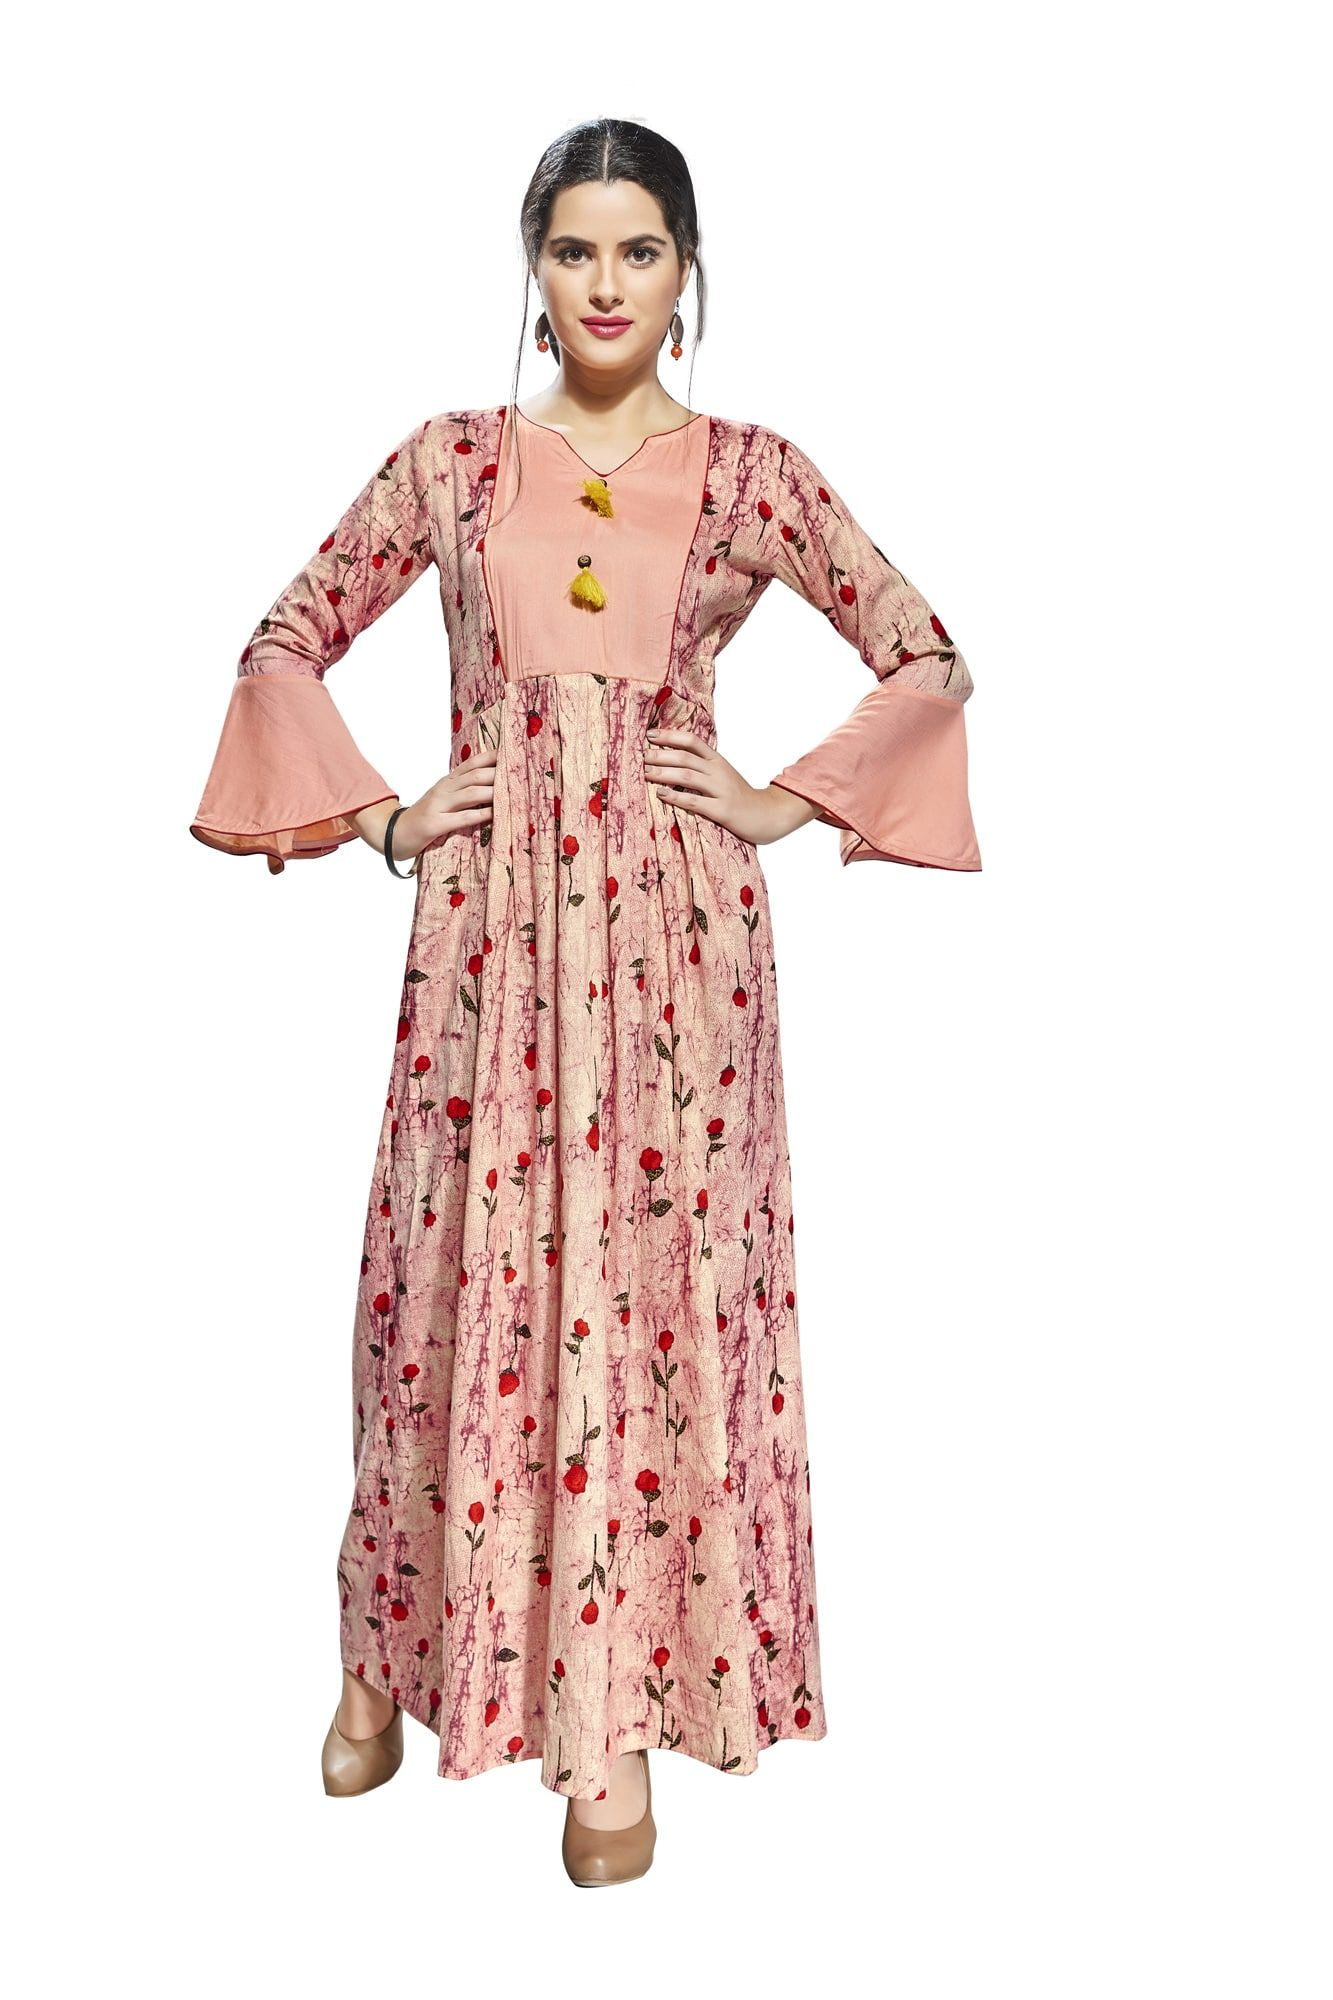 1d097476f Buy Anuswara Pink Color Rayon Printed Ankle Length Anarkali Kurti online. ✯  100% authentic products, ✯ Hand curated, ✯ Timely delivery, ...